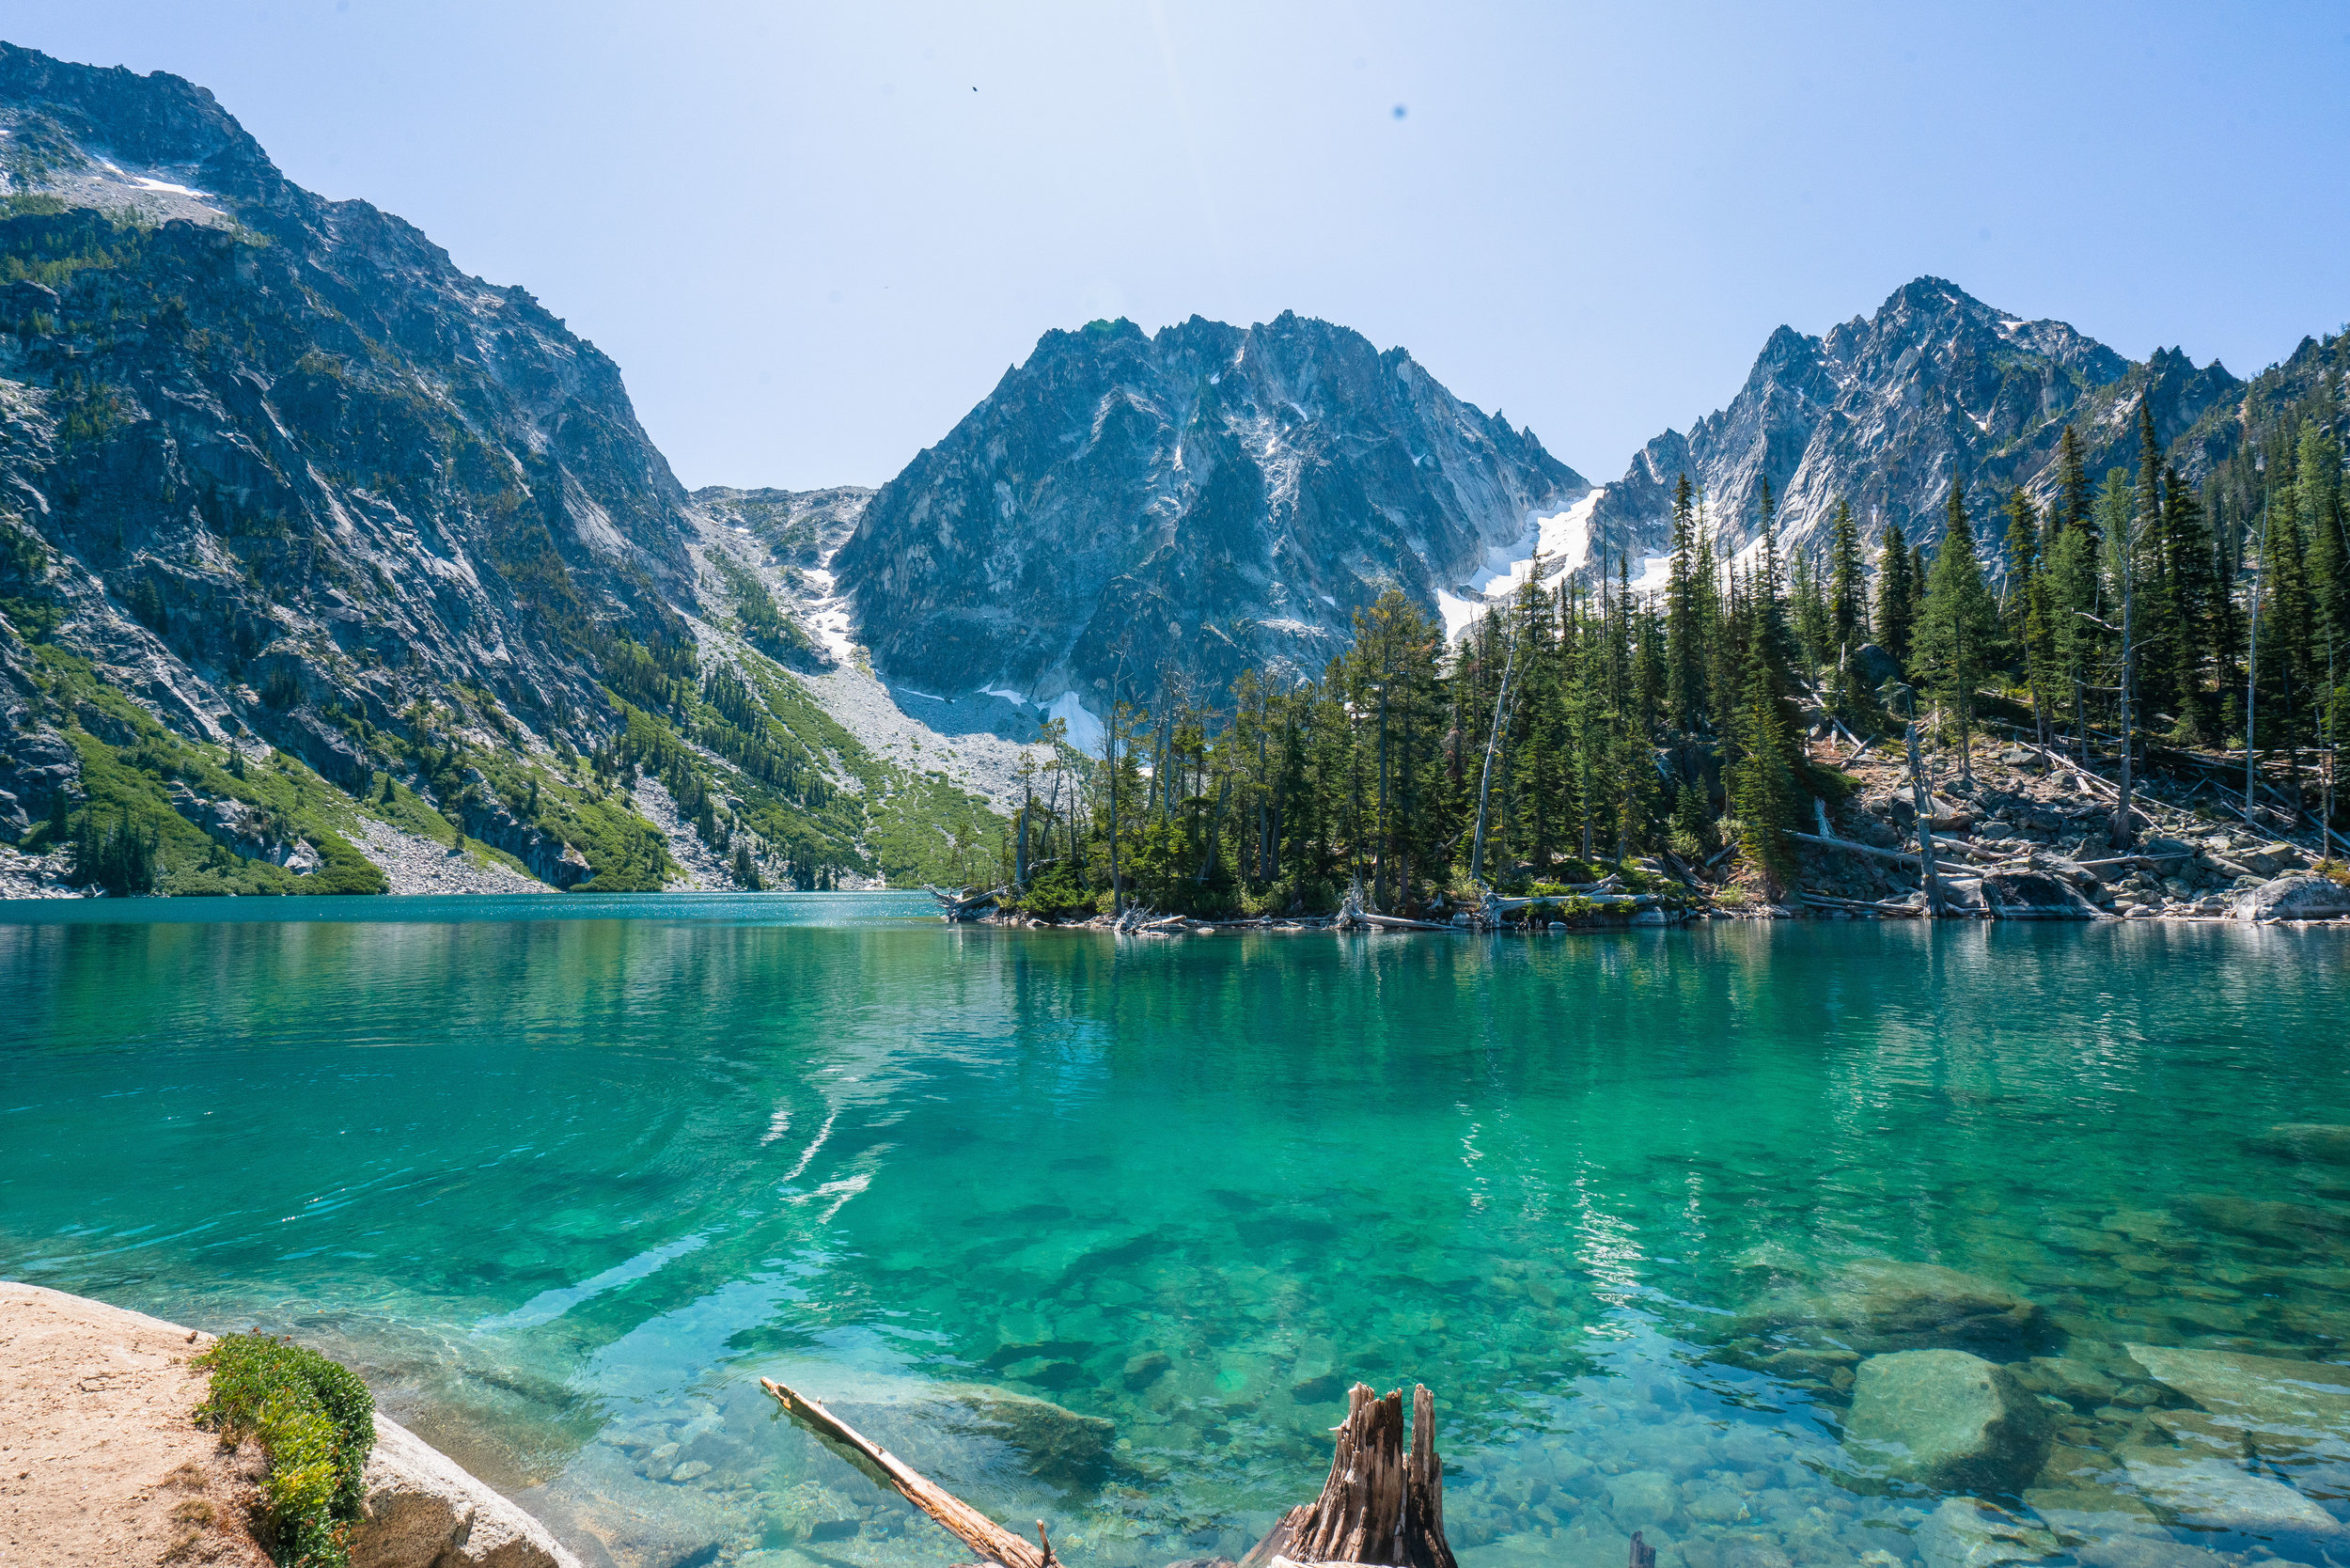 Colchuck Lake in the Enchantments area of Washington